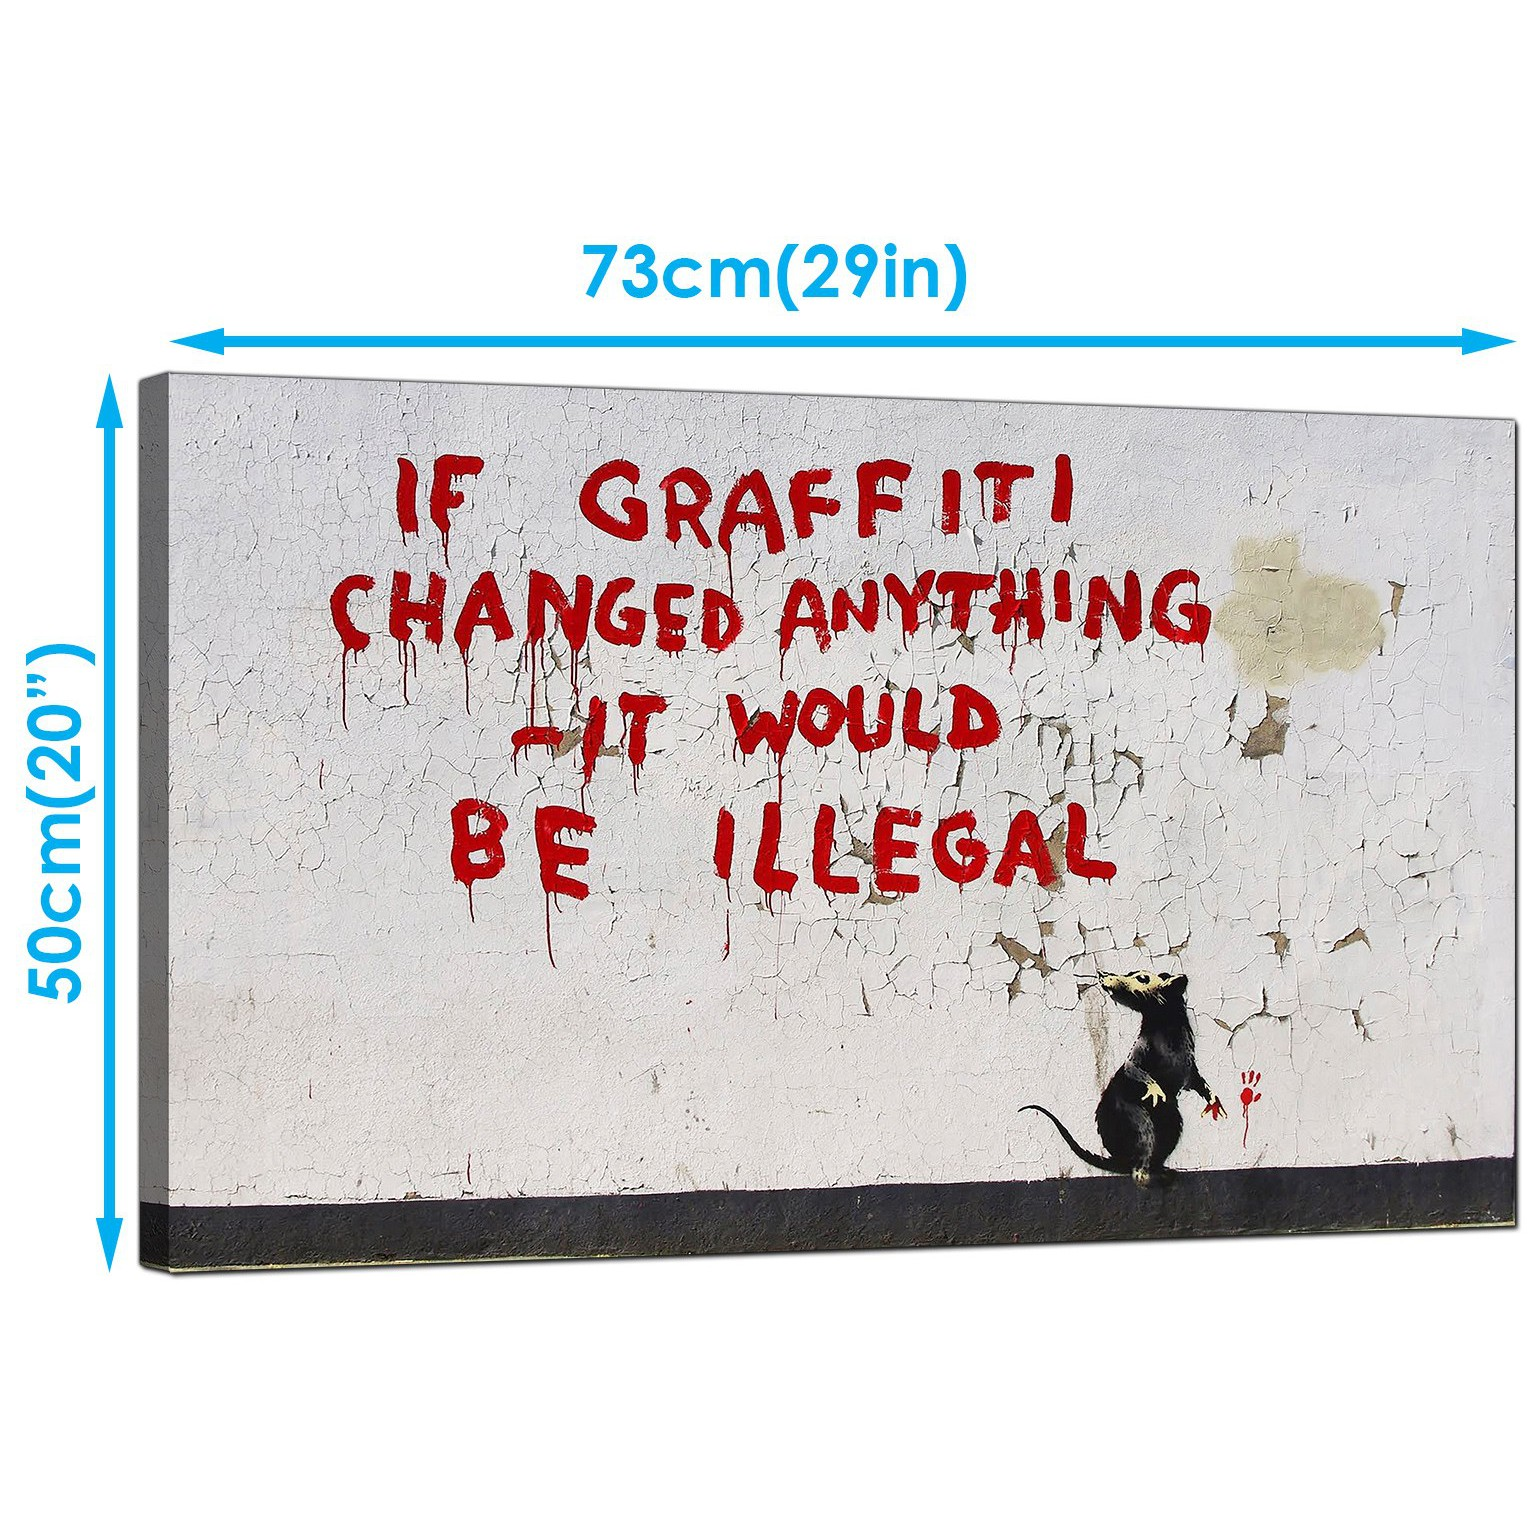 Display gallery item 2 · banksy canvas art prints graffiti rat if graffiti changed anything it would be illegal display gallery item 3